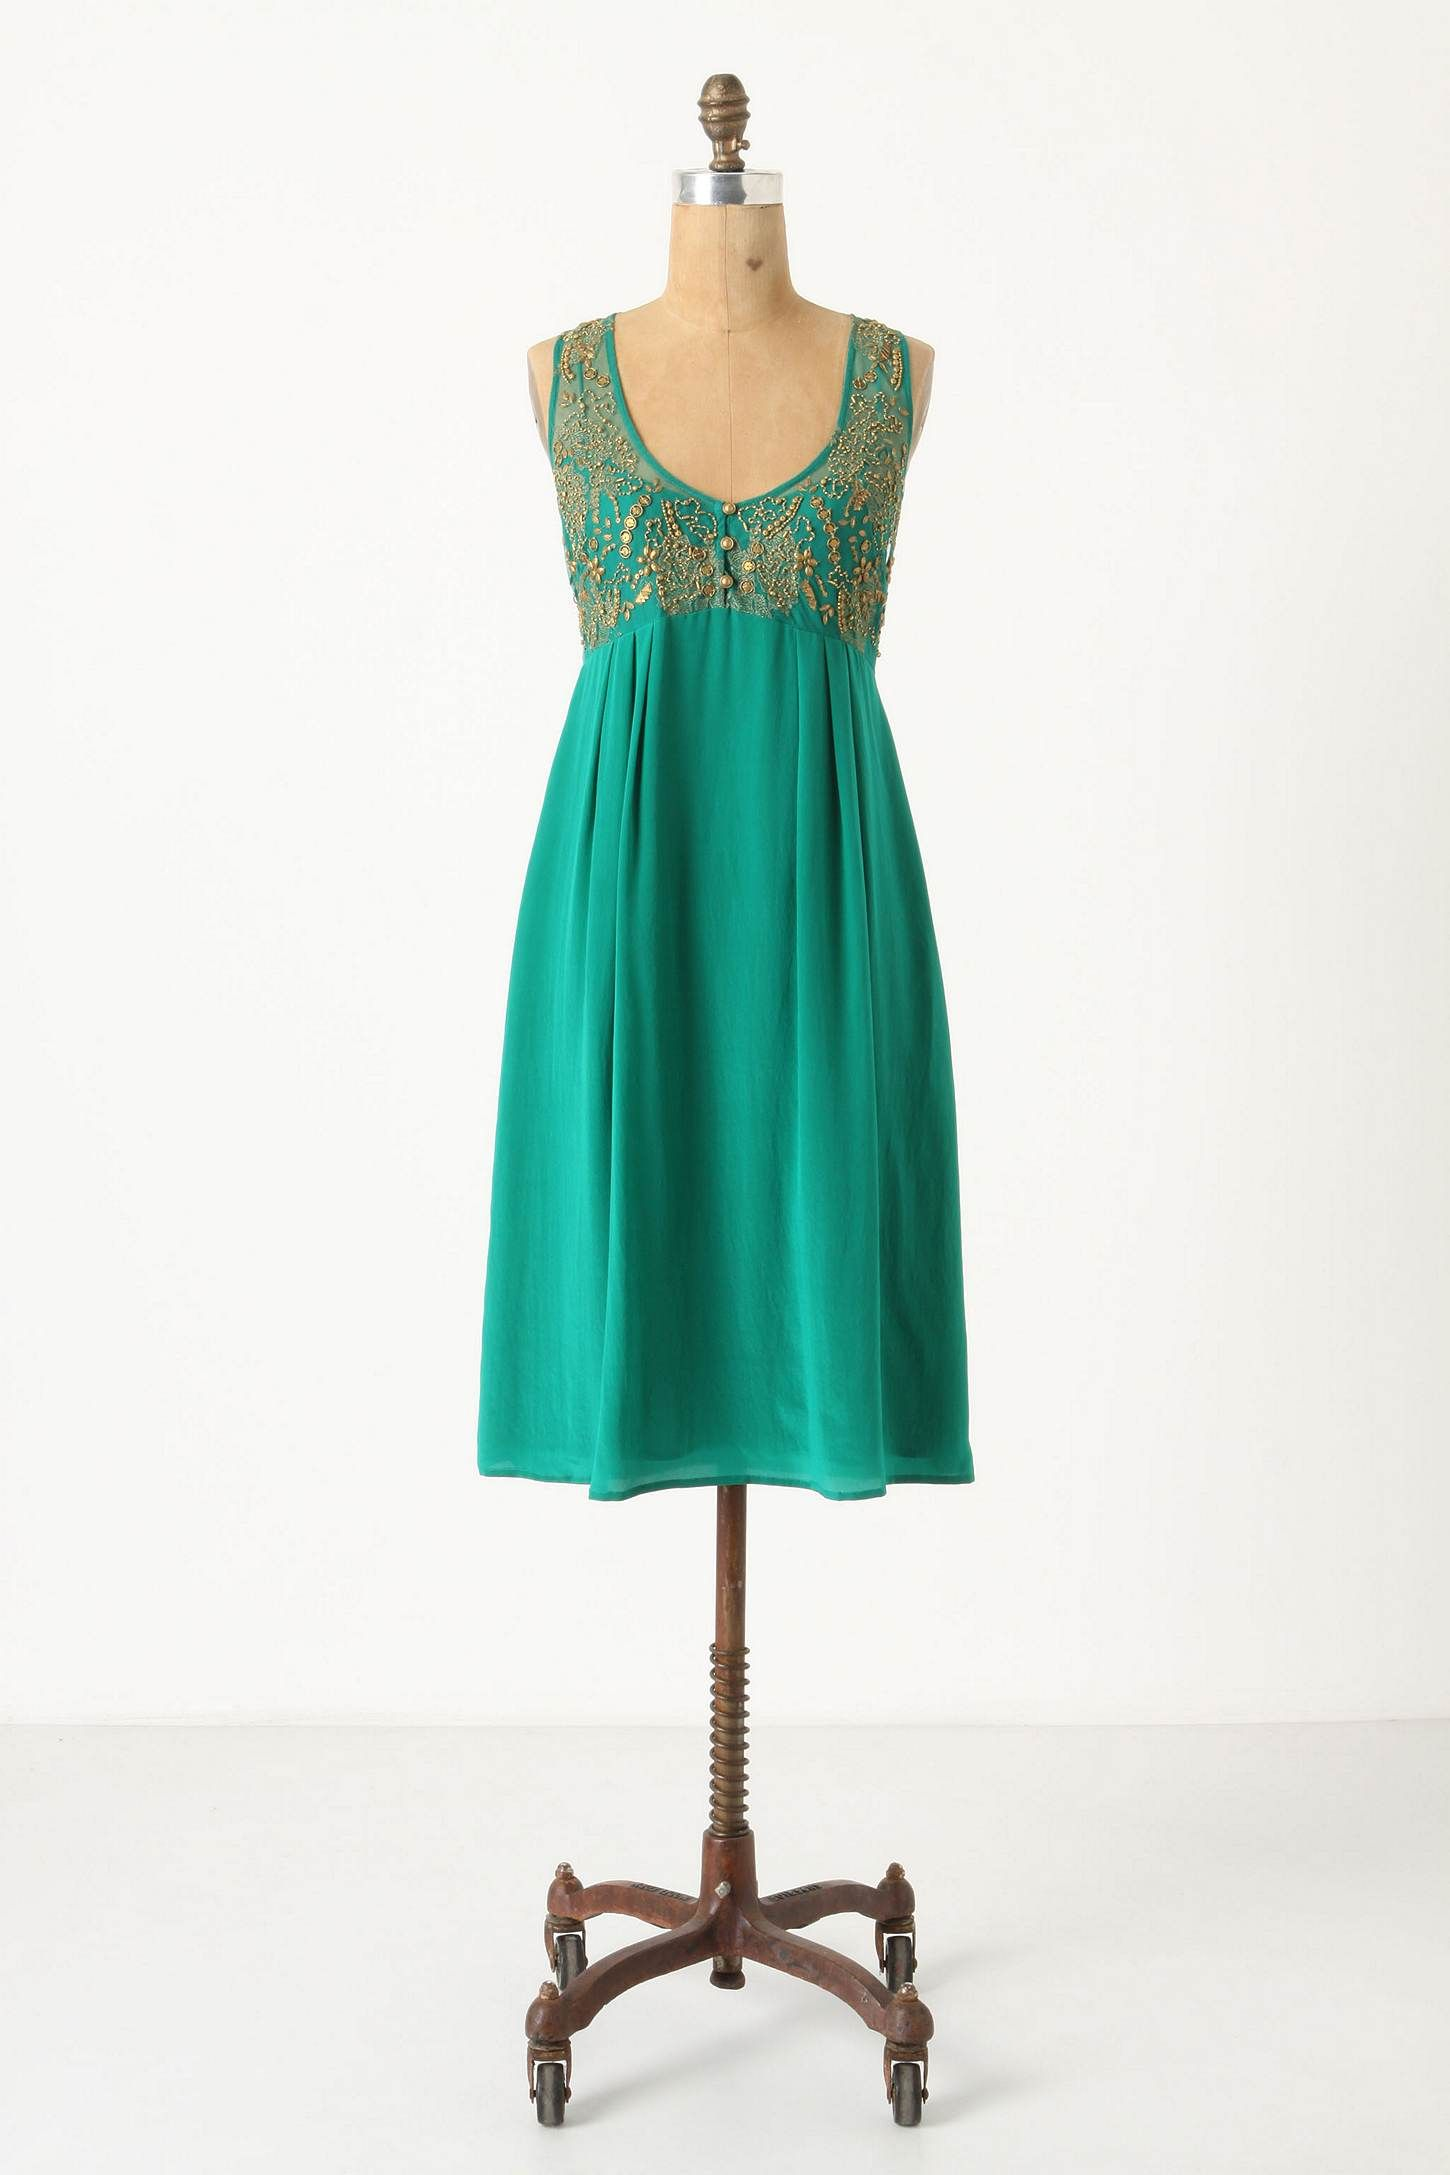 Fountain knob clothes teal and anthropology dresses